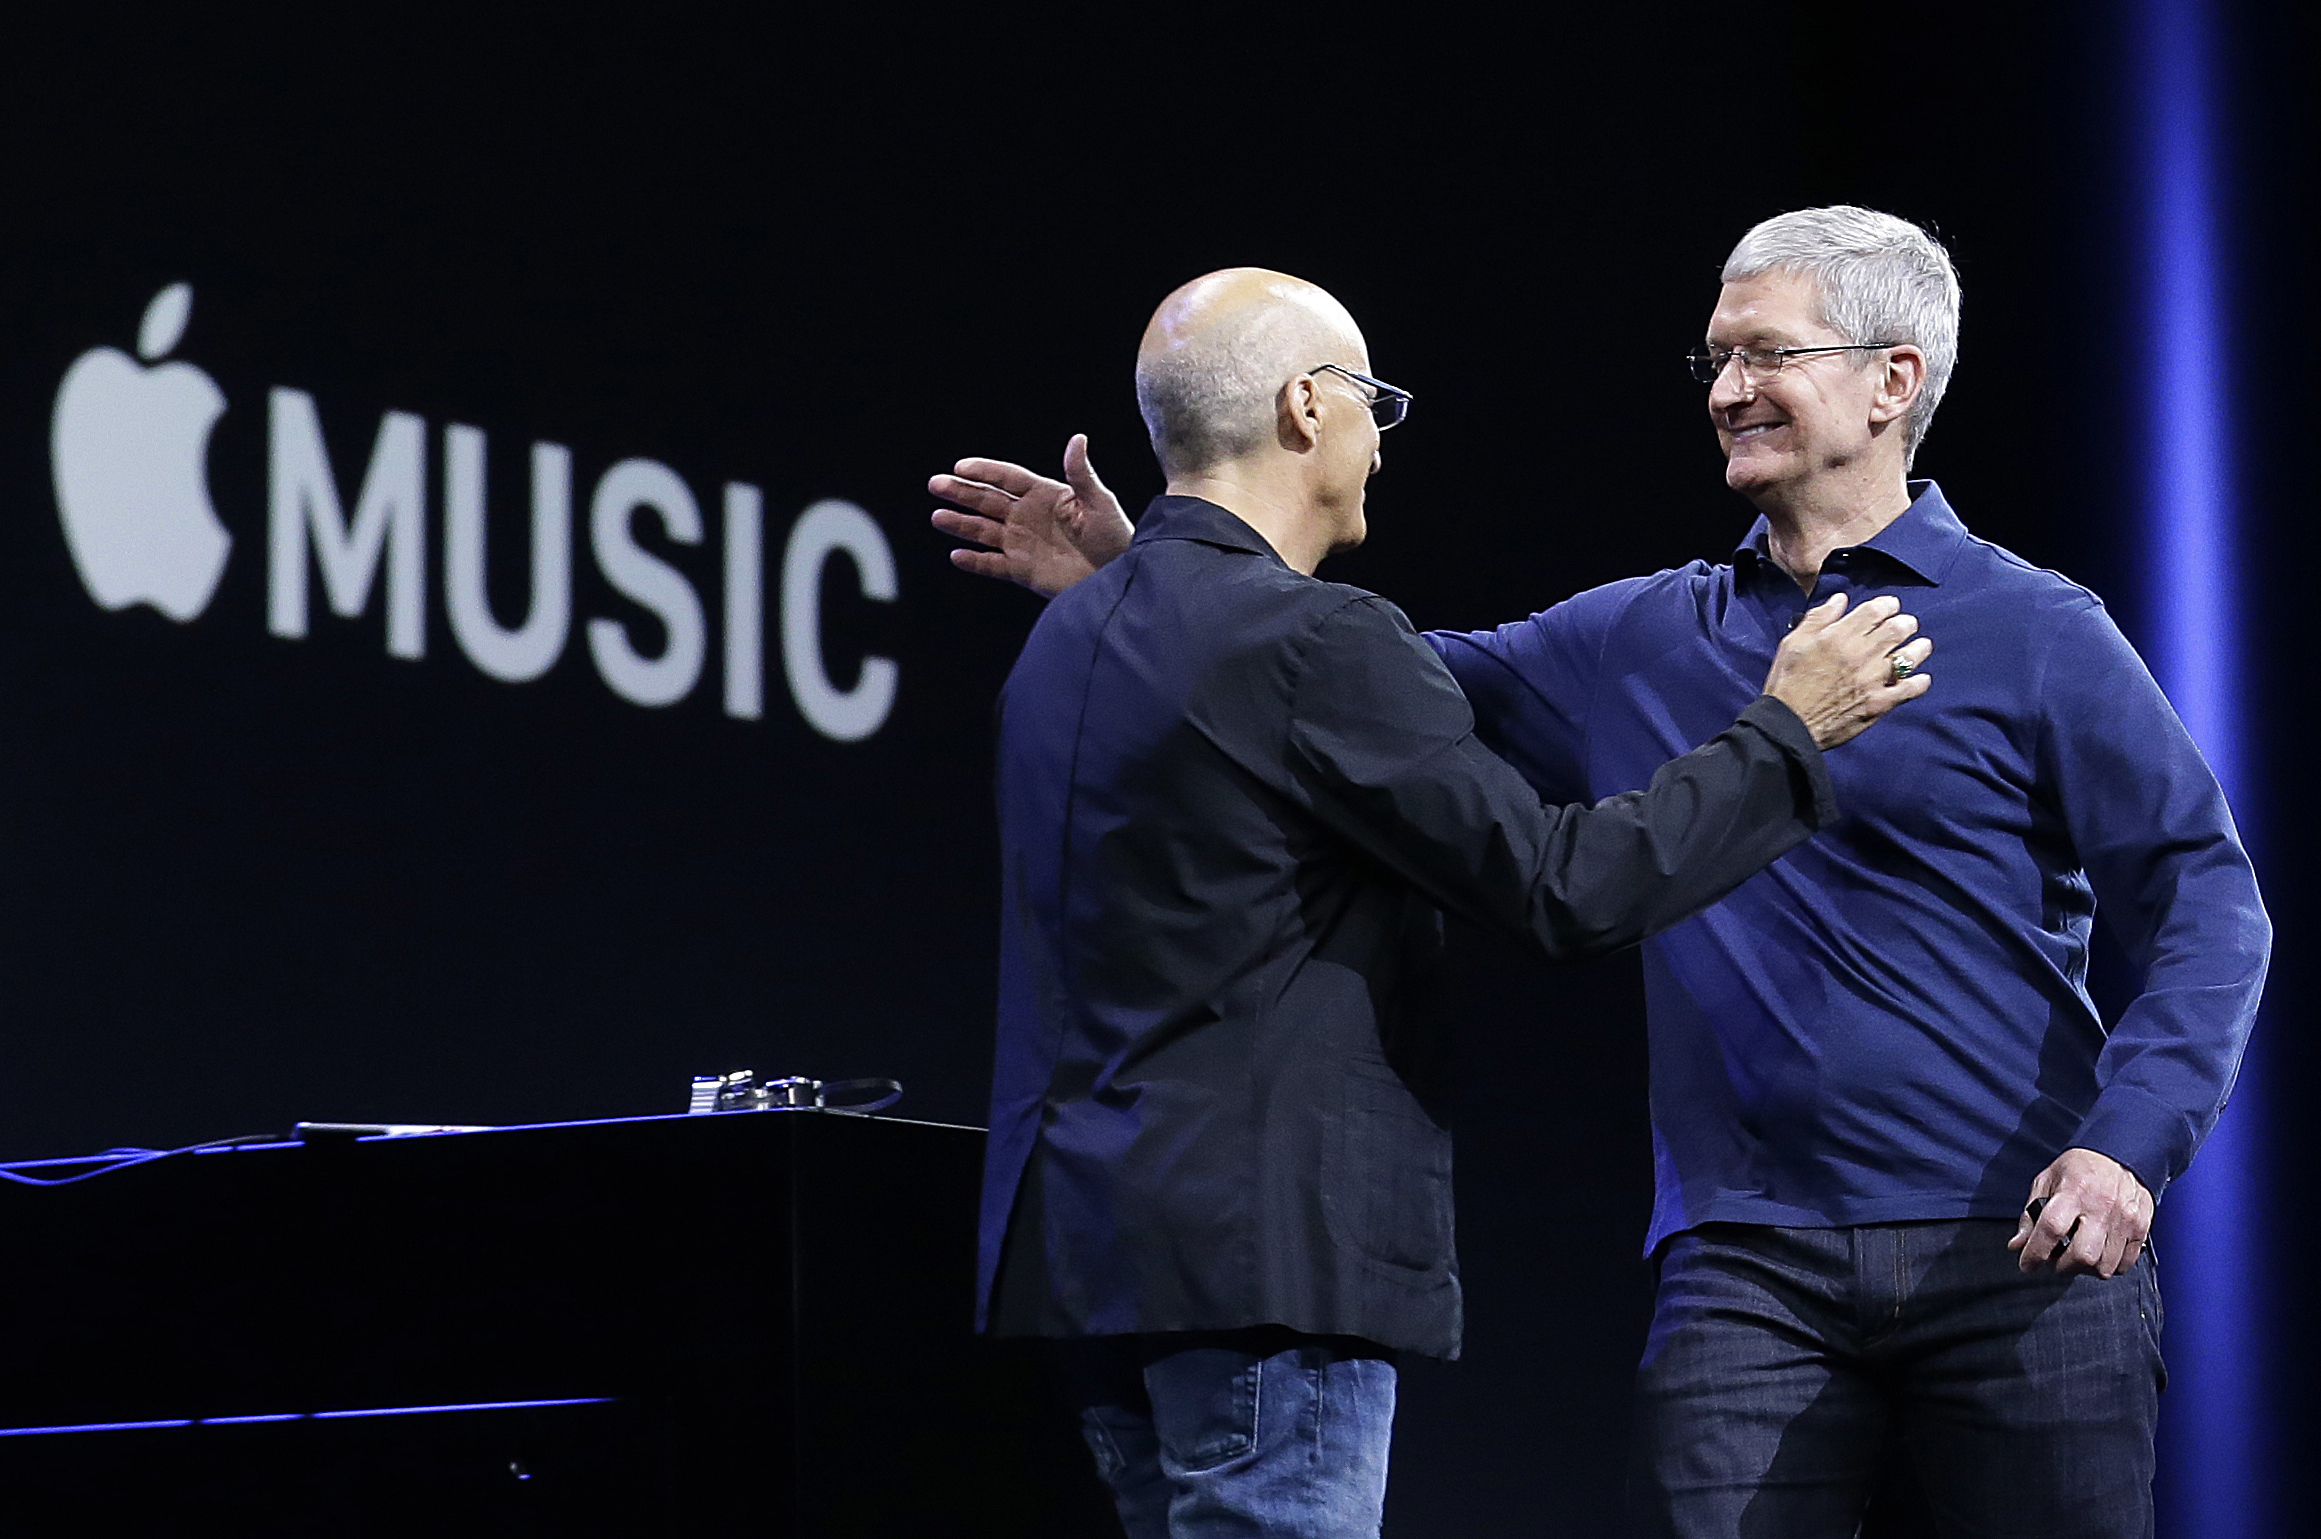 "FILE - In this June 8, 2015 file photo, Apple CEO Tim Cook, right, hugs Beats by Dre co-founder and Apple employee Jimmy Iovine at the Apple Worldwide Developers Conference in San Francisco when Apple announced Apple Music, an app that combines a 24-hour, seven-day live radio station called ""Beats 1"" with an on-demand music streaming service. Apple Inc. says it has 15 million users on its streaming-music service, including 6.5 million paying subscribers. The Wall Street Journal says (http://on.wsj.com/1LAy1Mz ) in a report from Laguna Beach, California, posted early Tuesday, Oct. 20 on its website that Apple launched Apple Music on June 30 and offered every user a three-month trial period. (AP Photo/Jeff Chiu, File)"